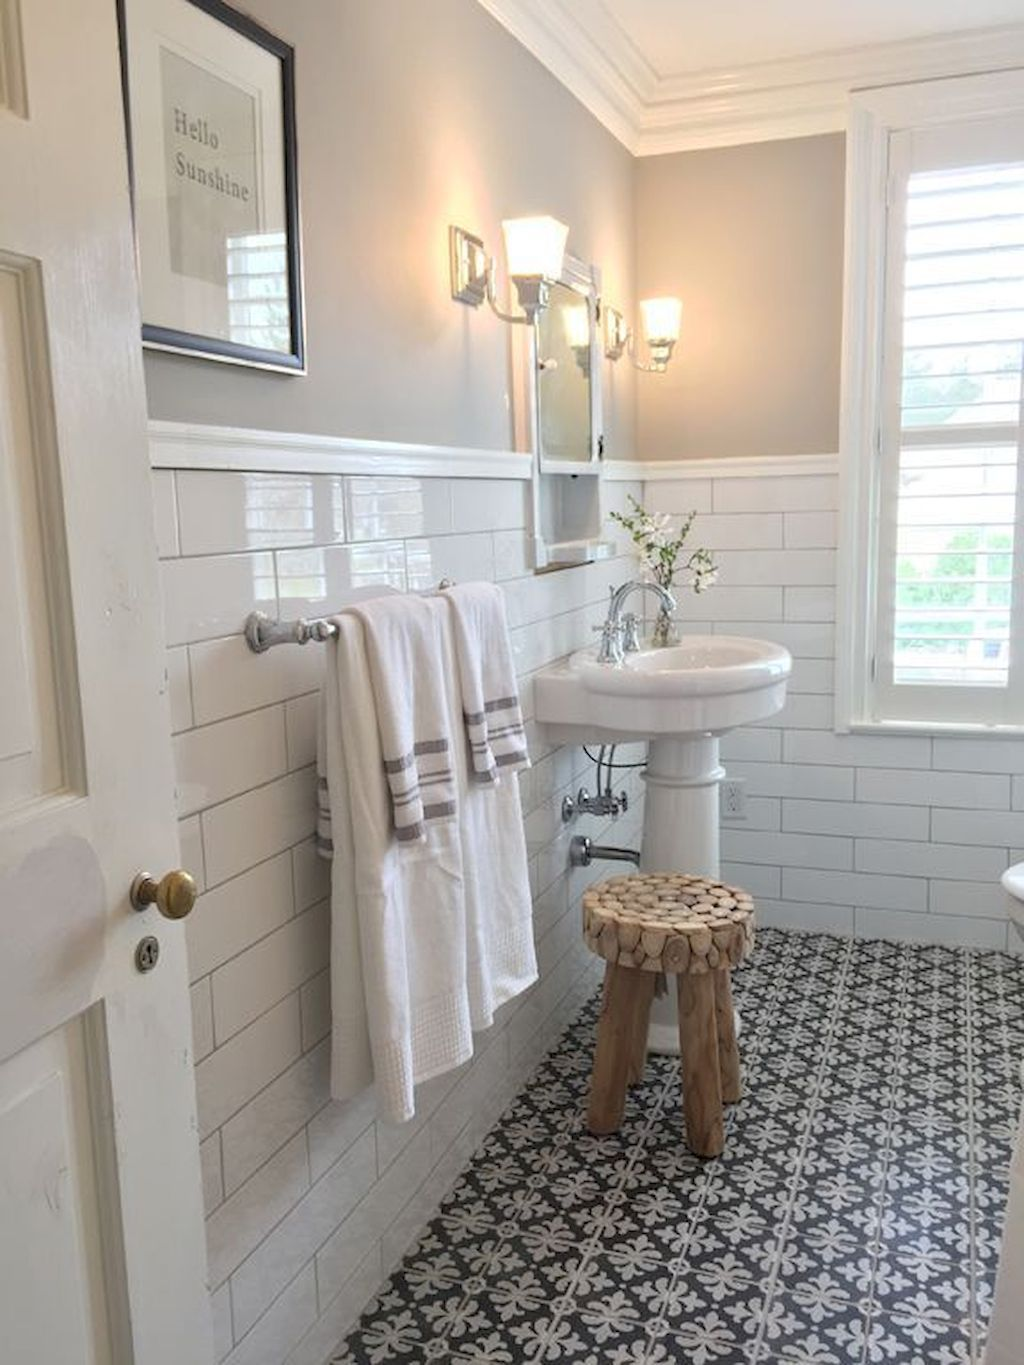 Vintage farmhouse bathroom remodel ideas on a